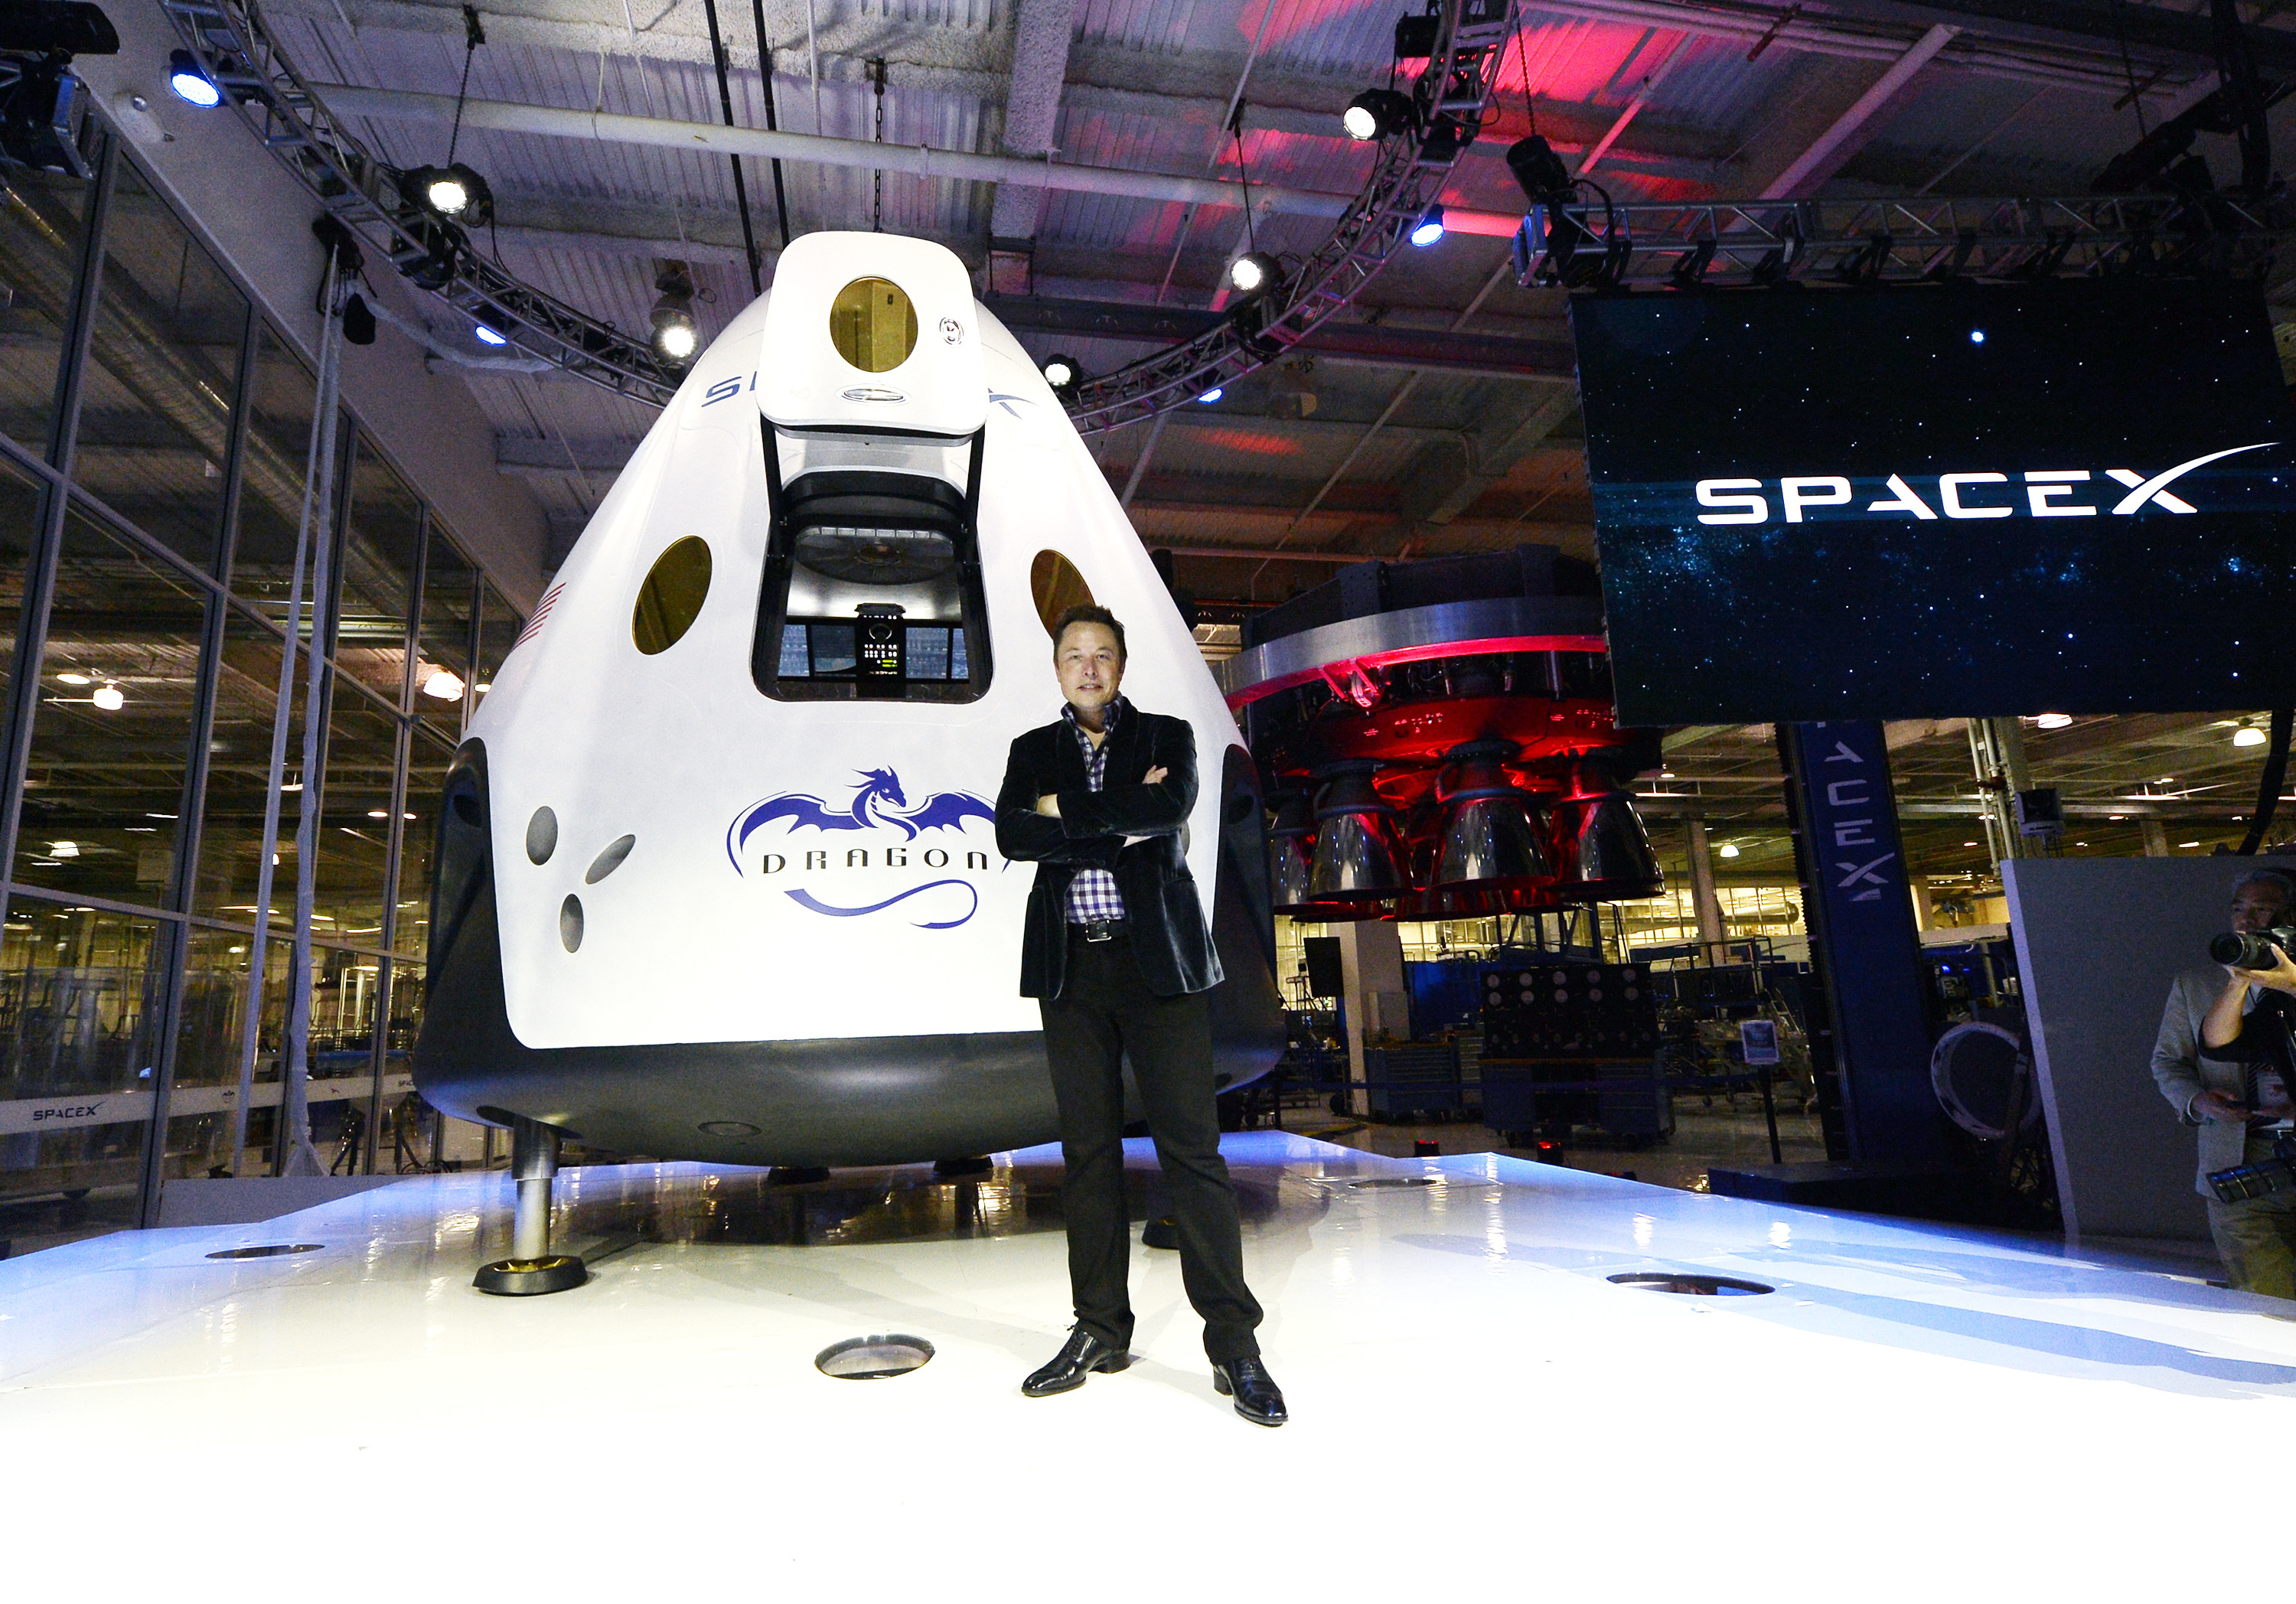 SpaceX Sending Private Citizens Beyond The Moon